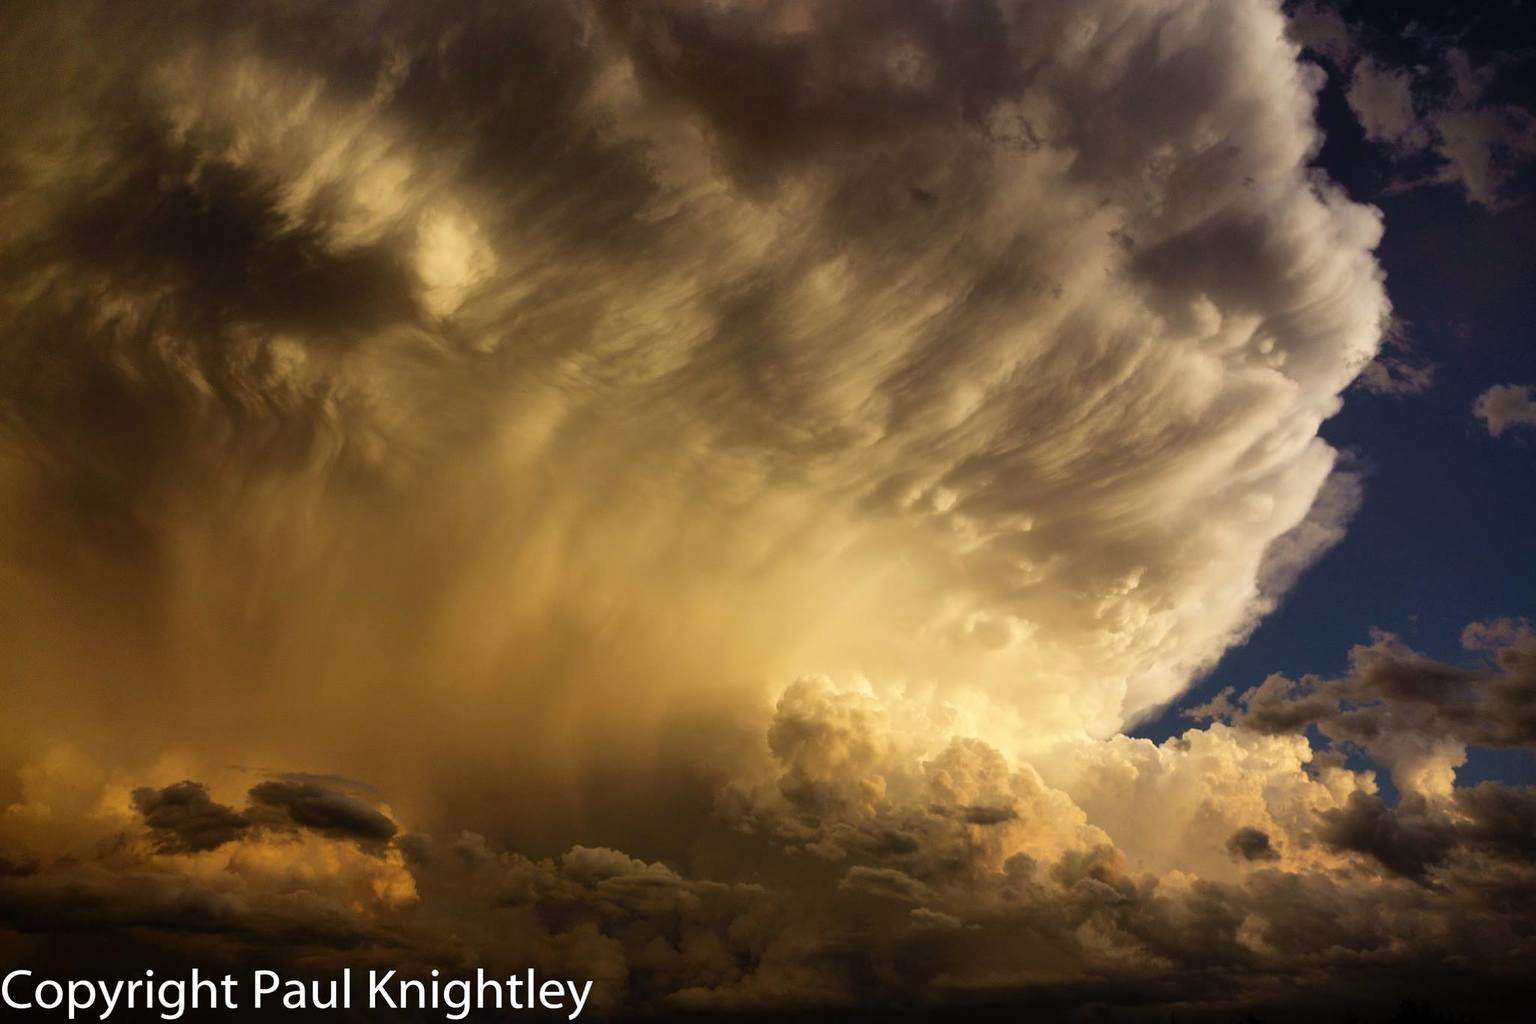 Stunning storm in central Oklahoma this evening, as viewed from the north near Fairview.